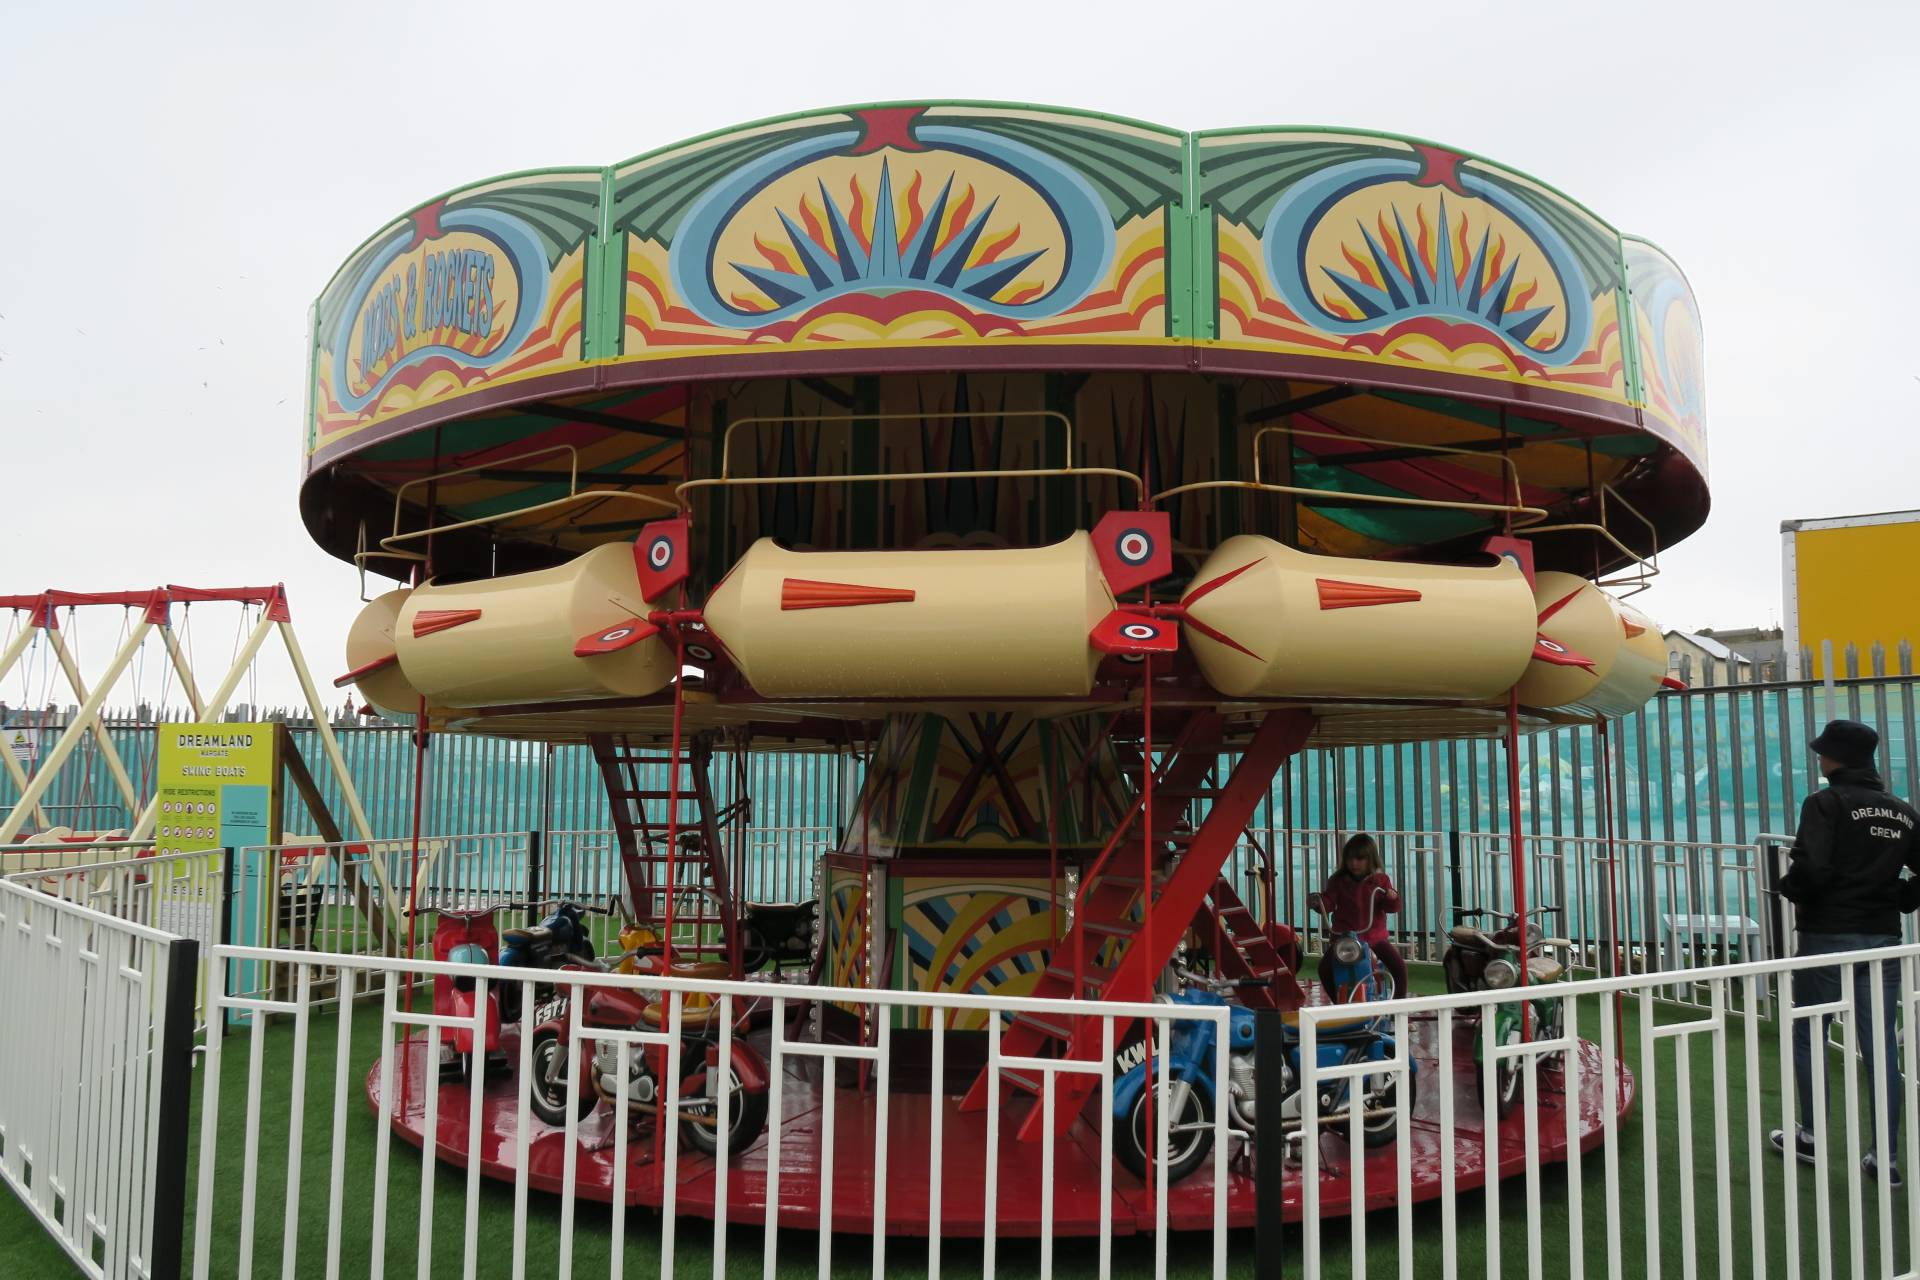 Read my review of Dreamland Margate